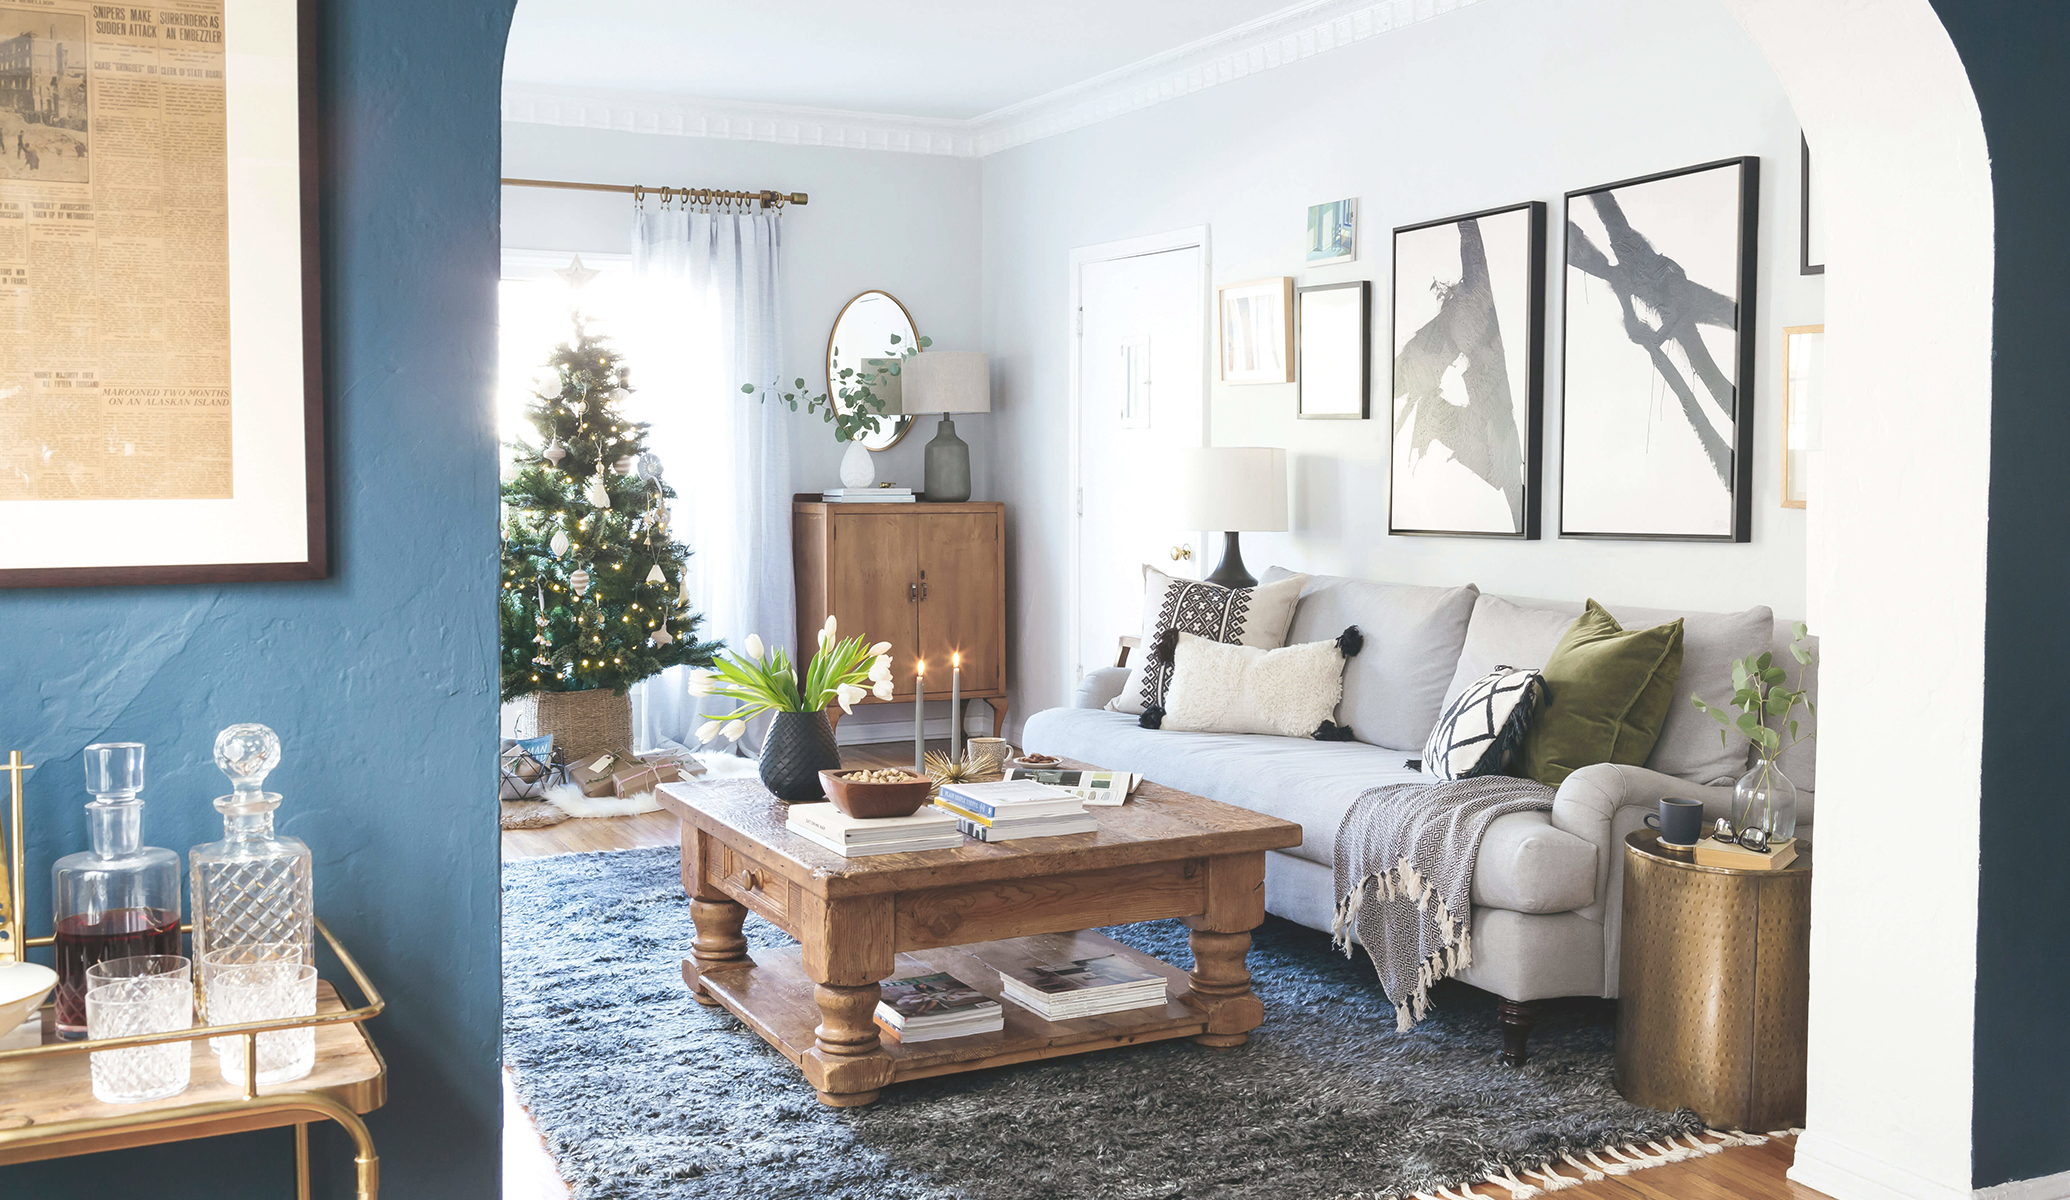 GINNY_MACDONALD_COSY_LIVING_ROOM_LOWRES_FEATURED_IMAGE 071718